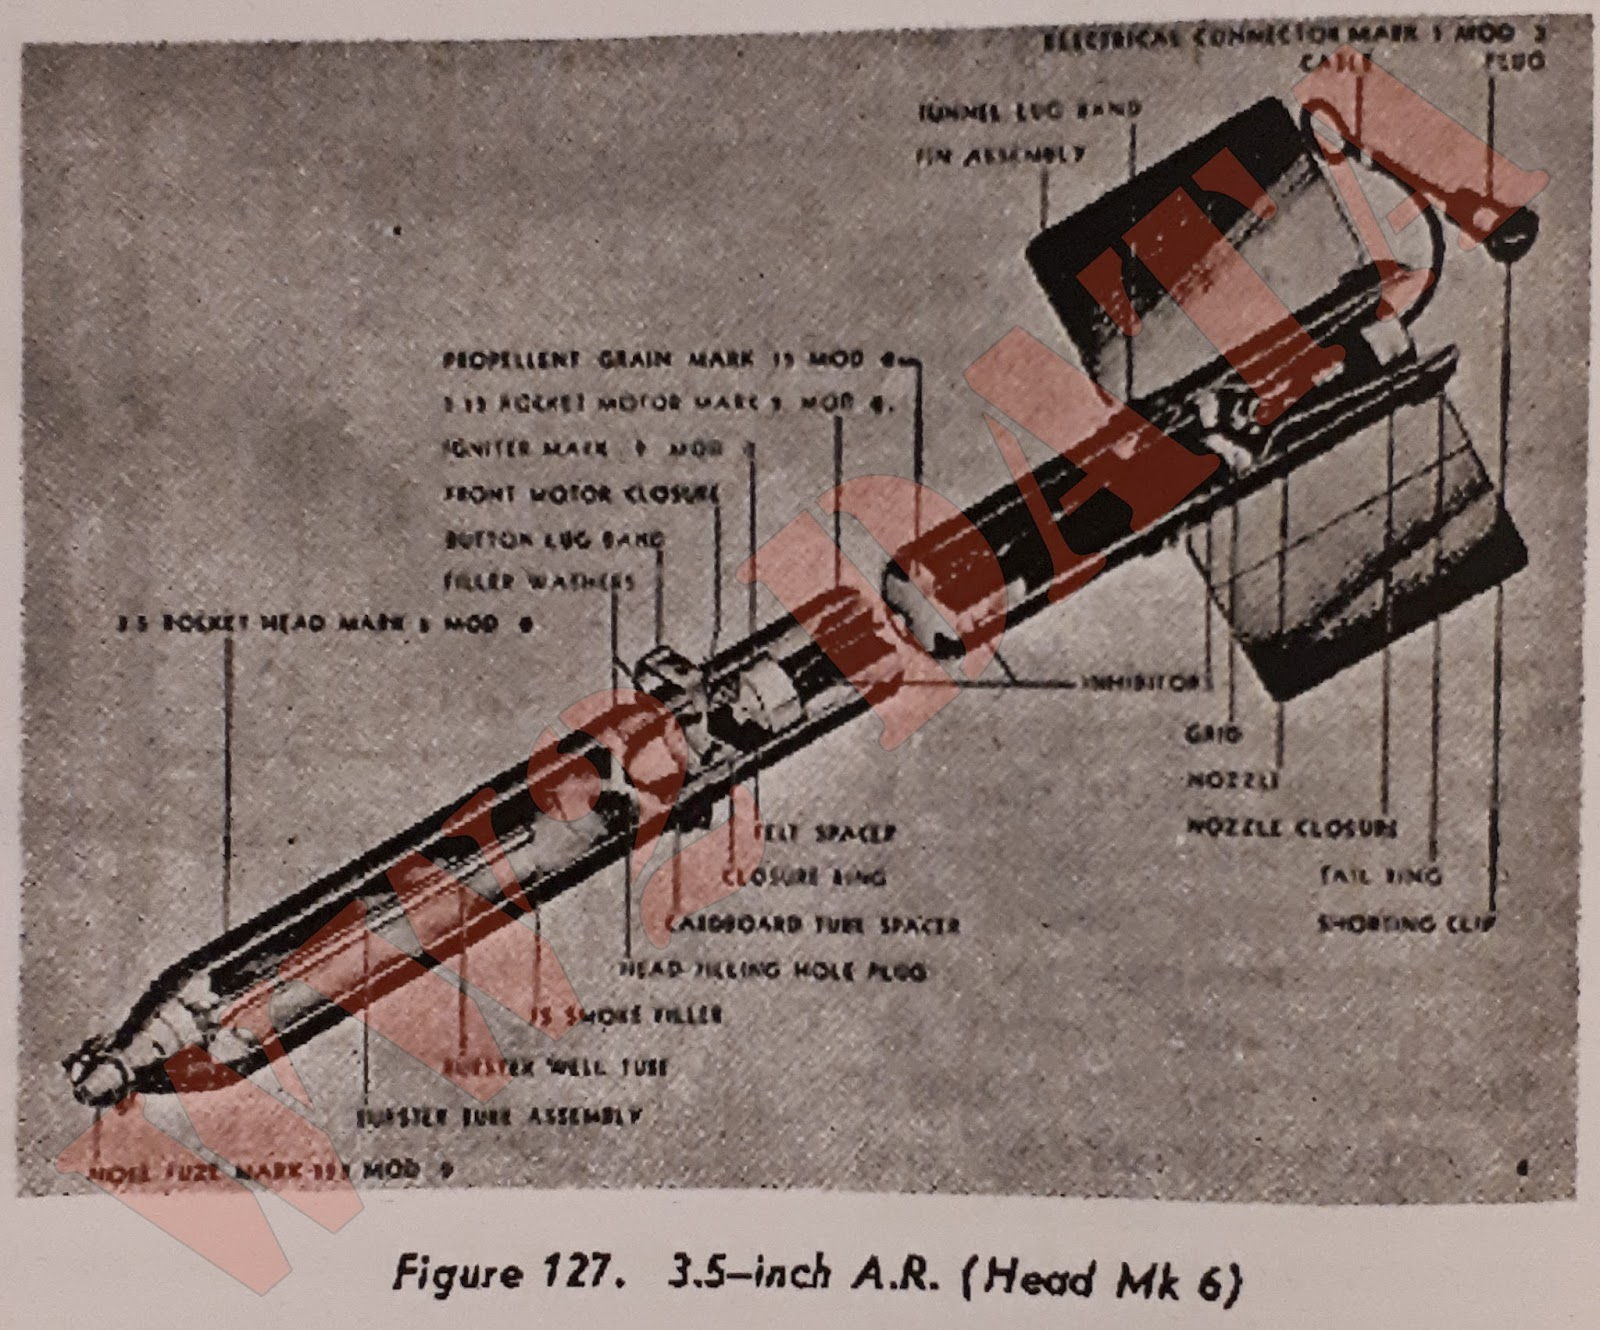 WW2 Equipment Data: American Projectiles and Explosives